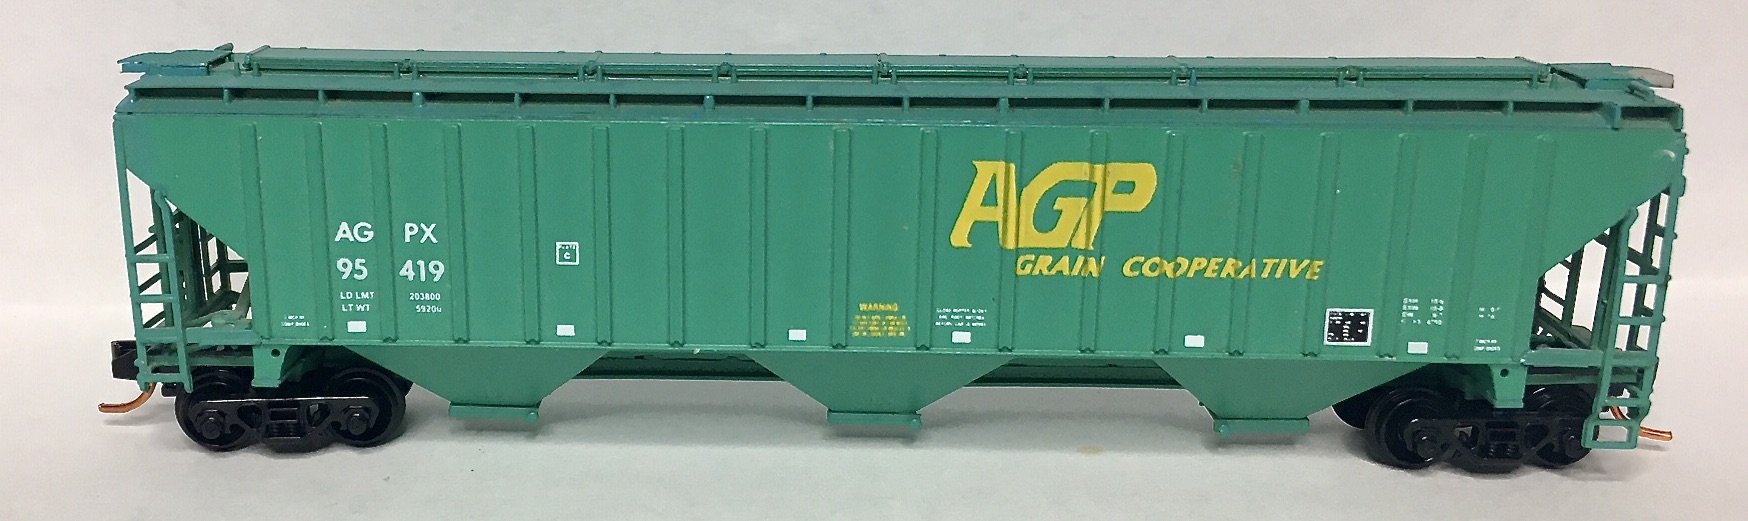 N Scale - InterMountain - 65355-0X - Covered Hopper, 3-Bay, Thrall 4750 - AG Processing - 95419